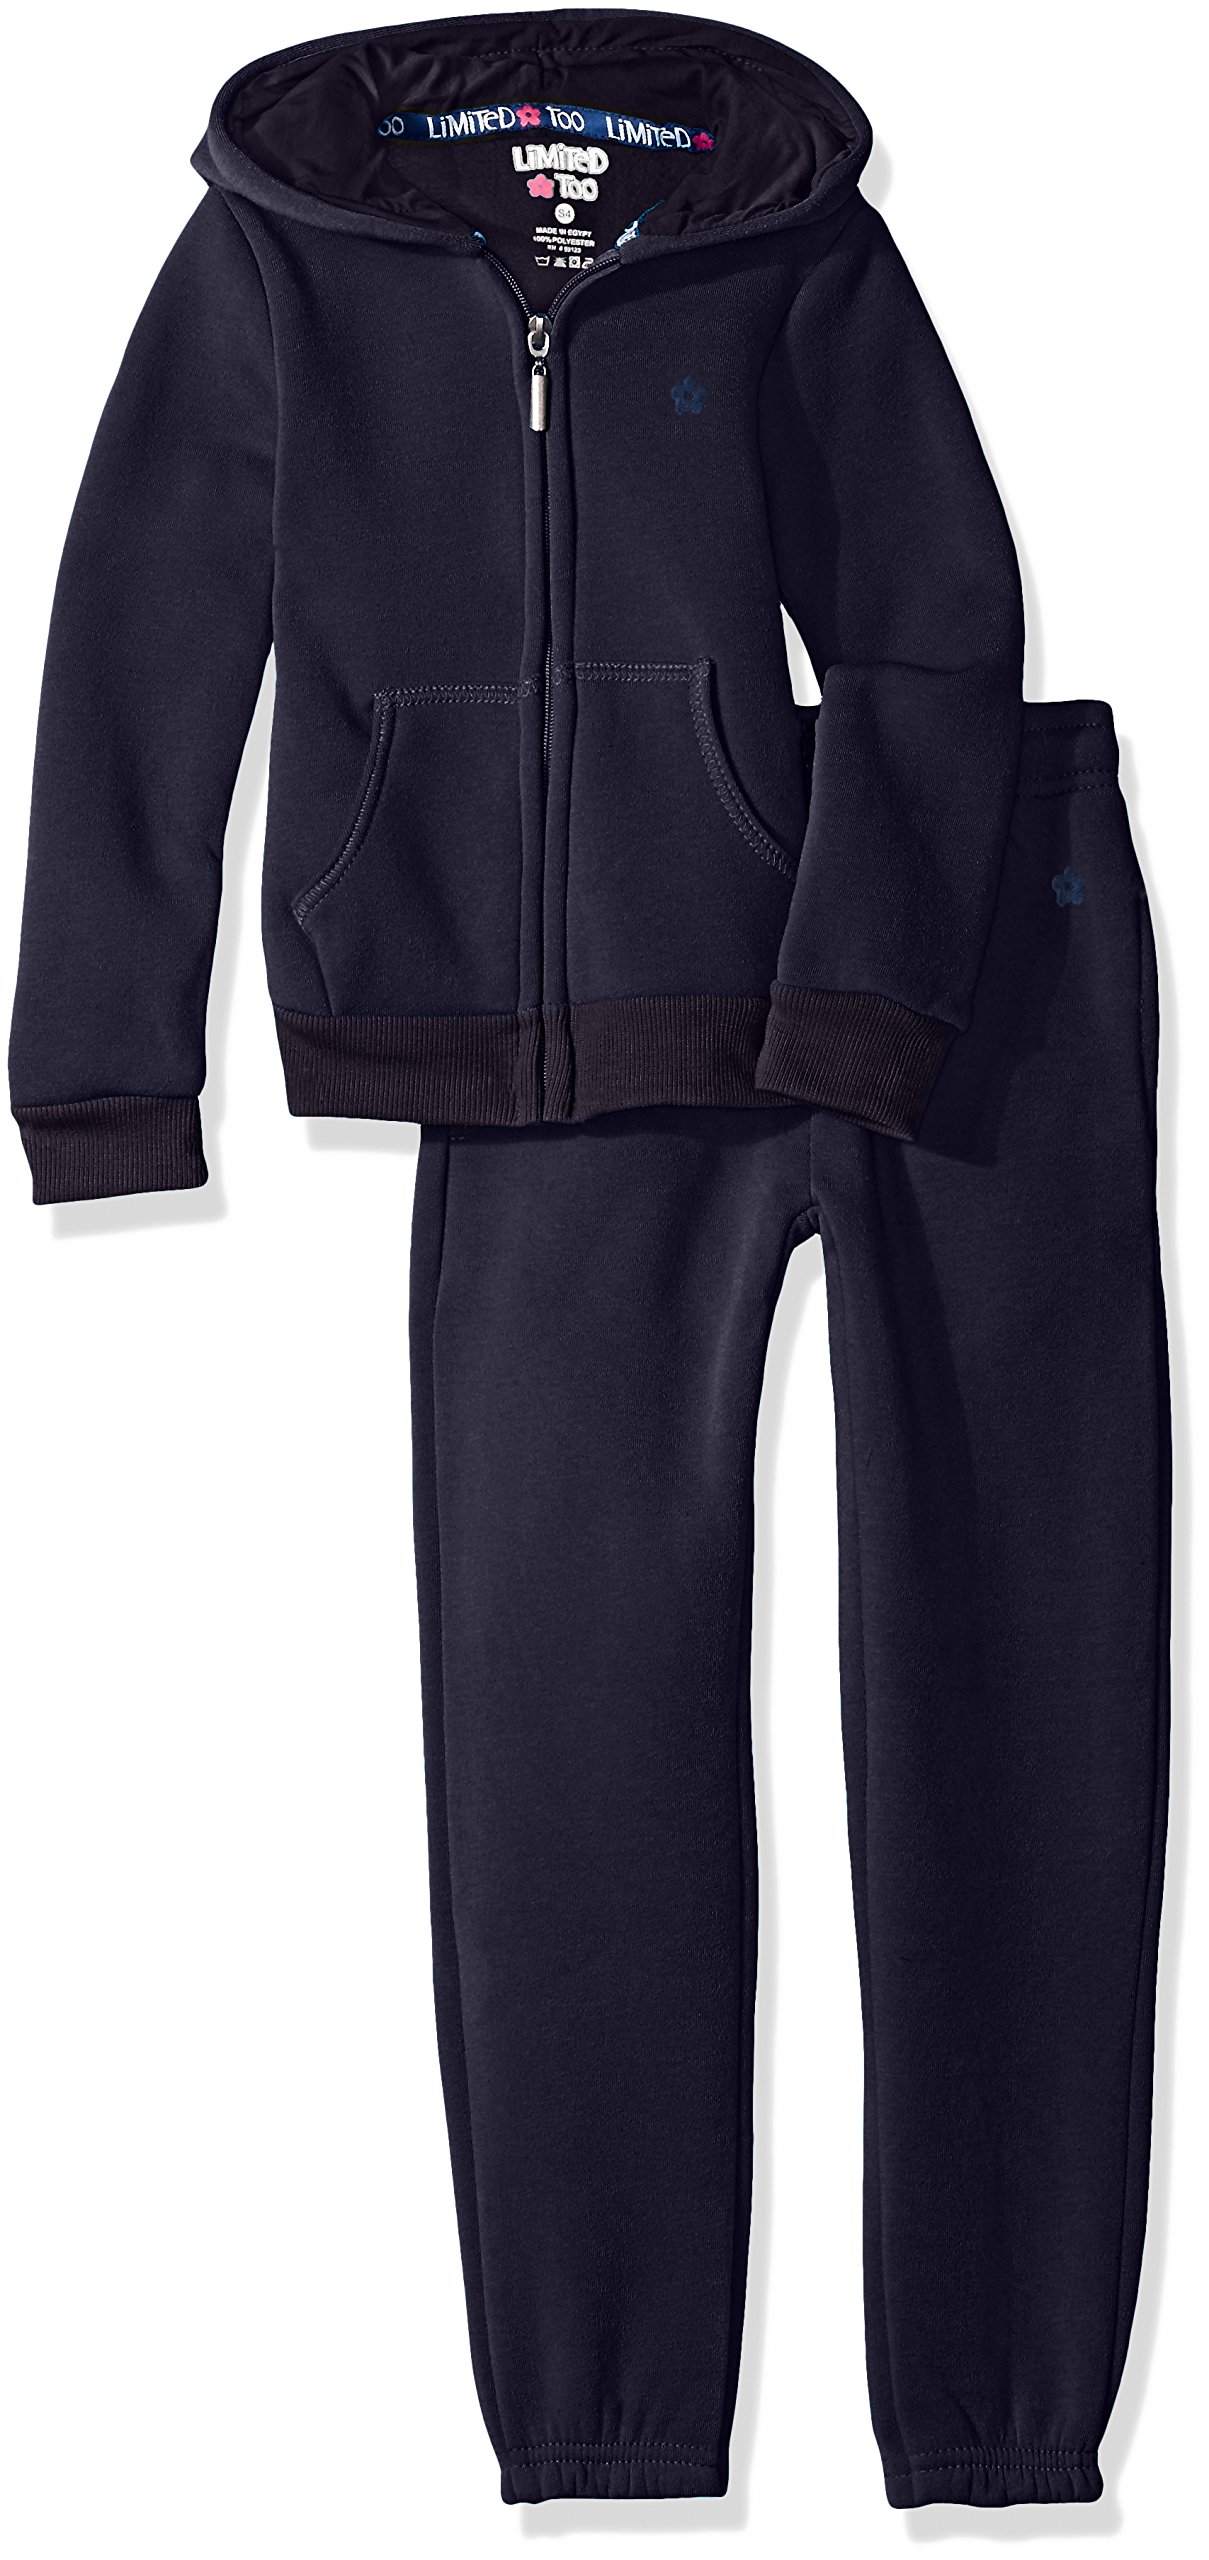 Limited Too Little Girls' Fleece Hoodie Jacket Pant Jog Set, Navy, 6X by Limited Too